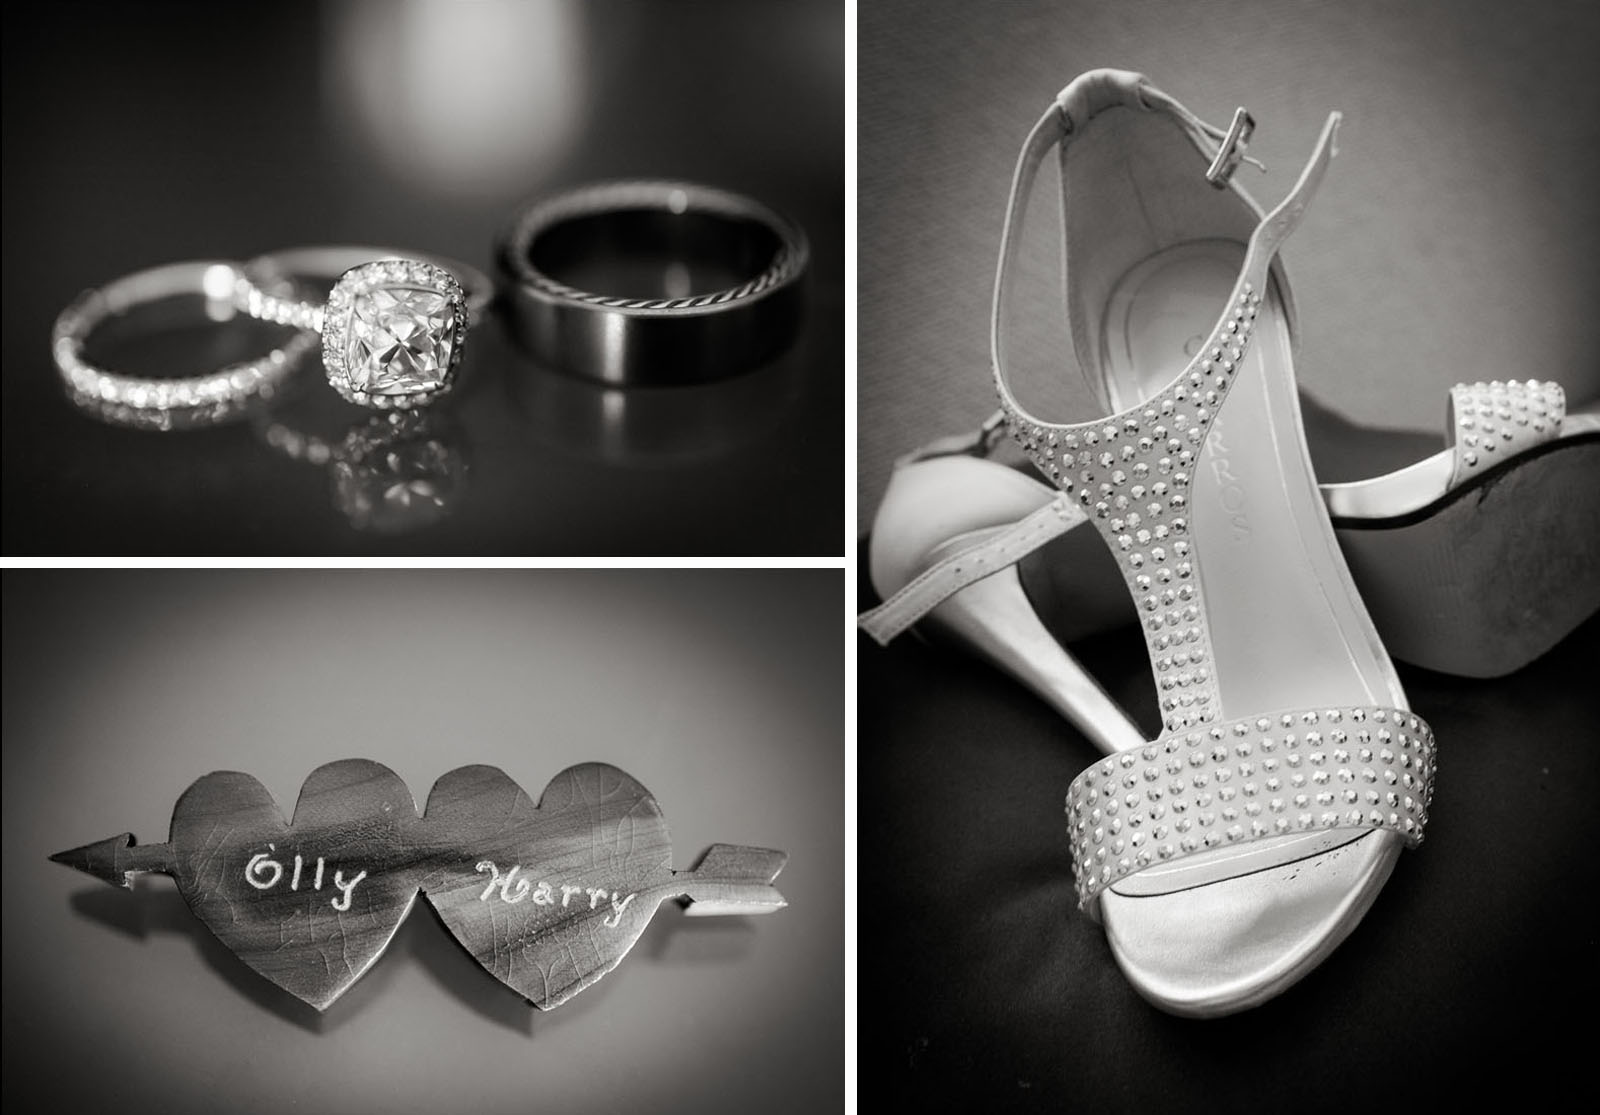 Wedding rings by Marisa Perry, Shoes by Caparros